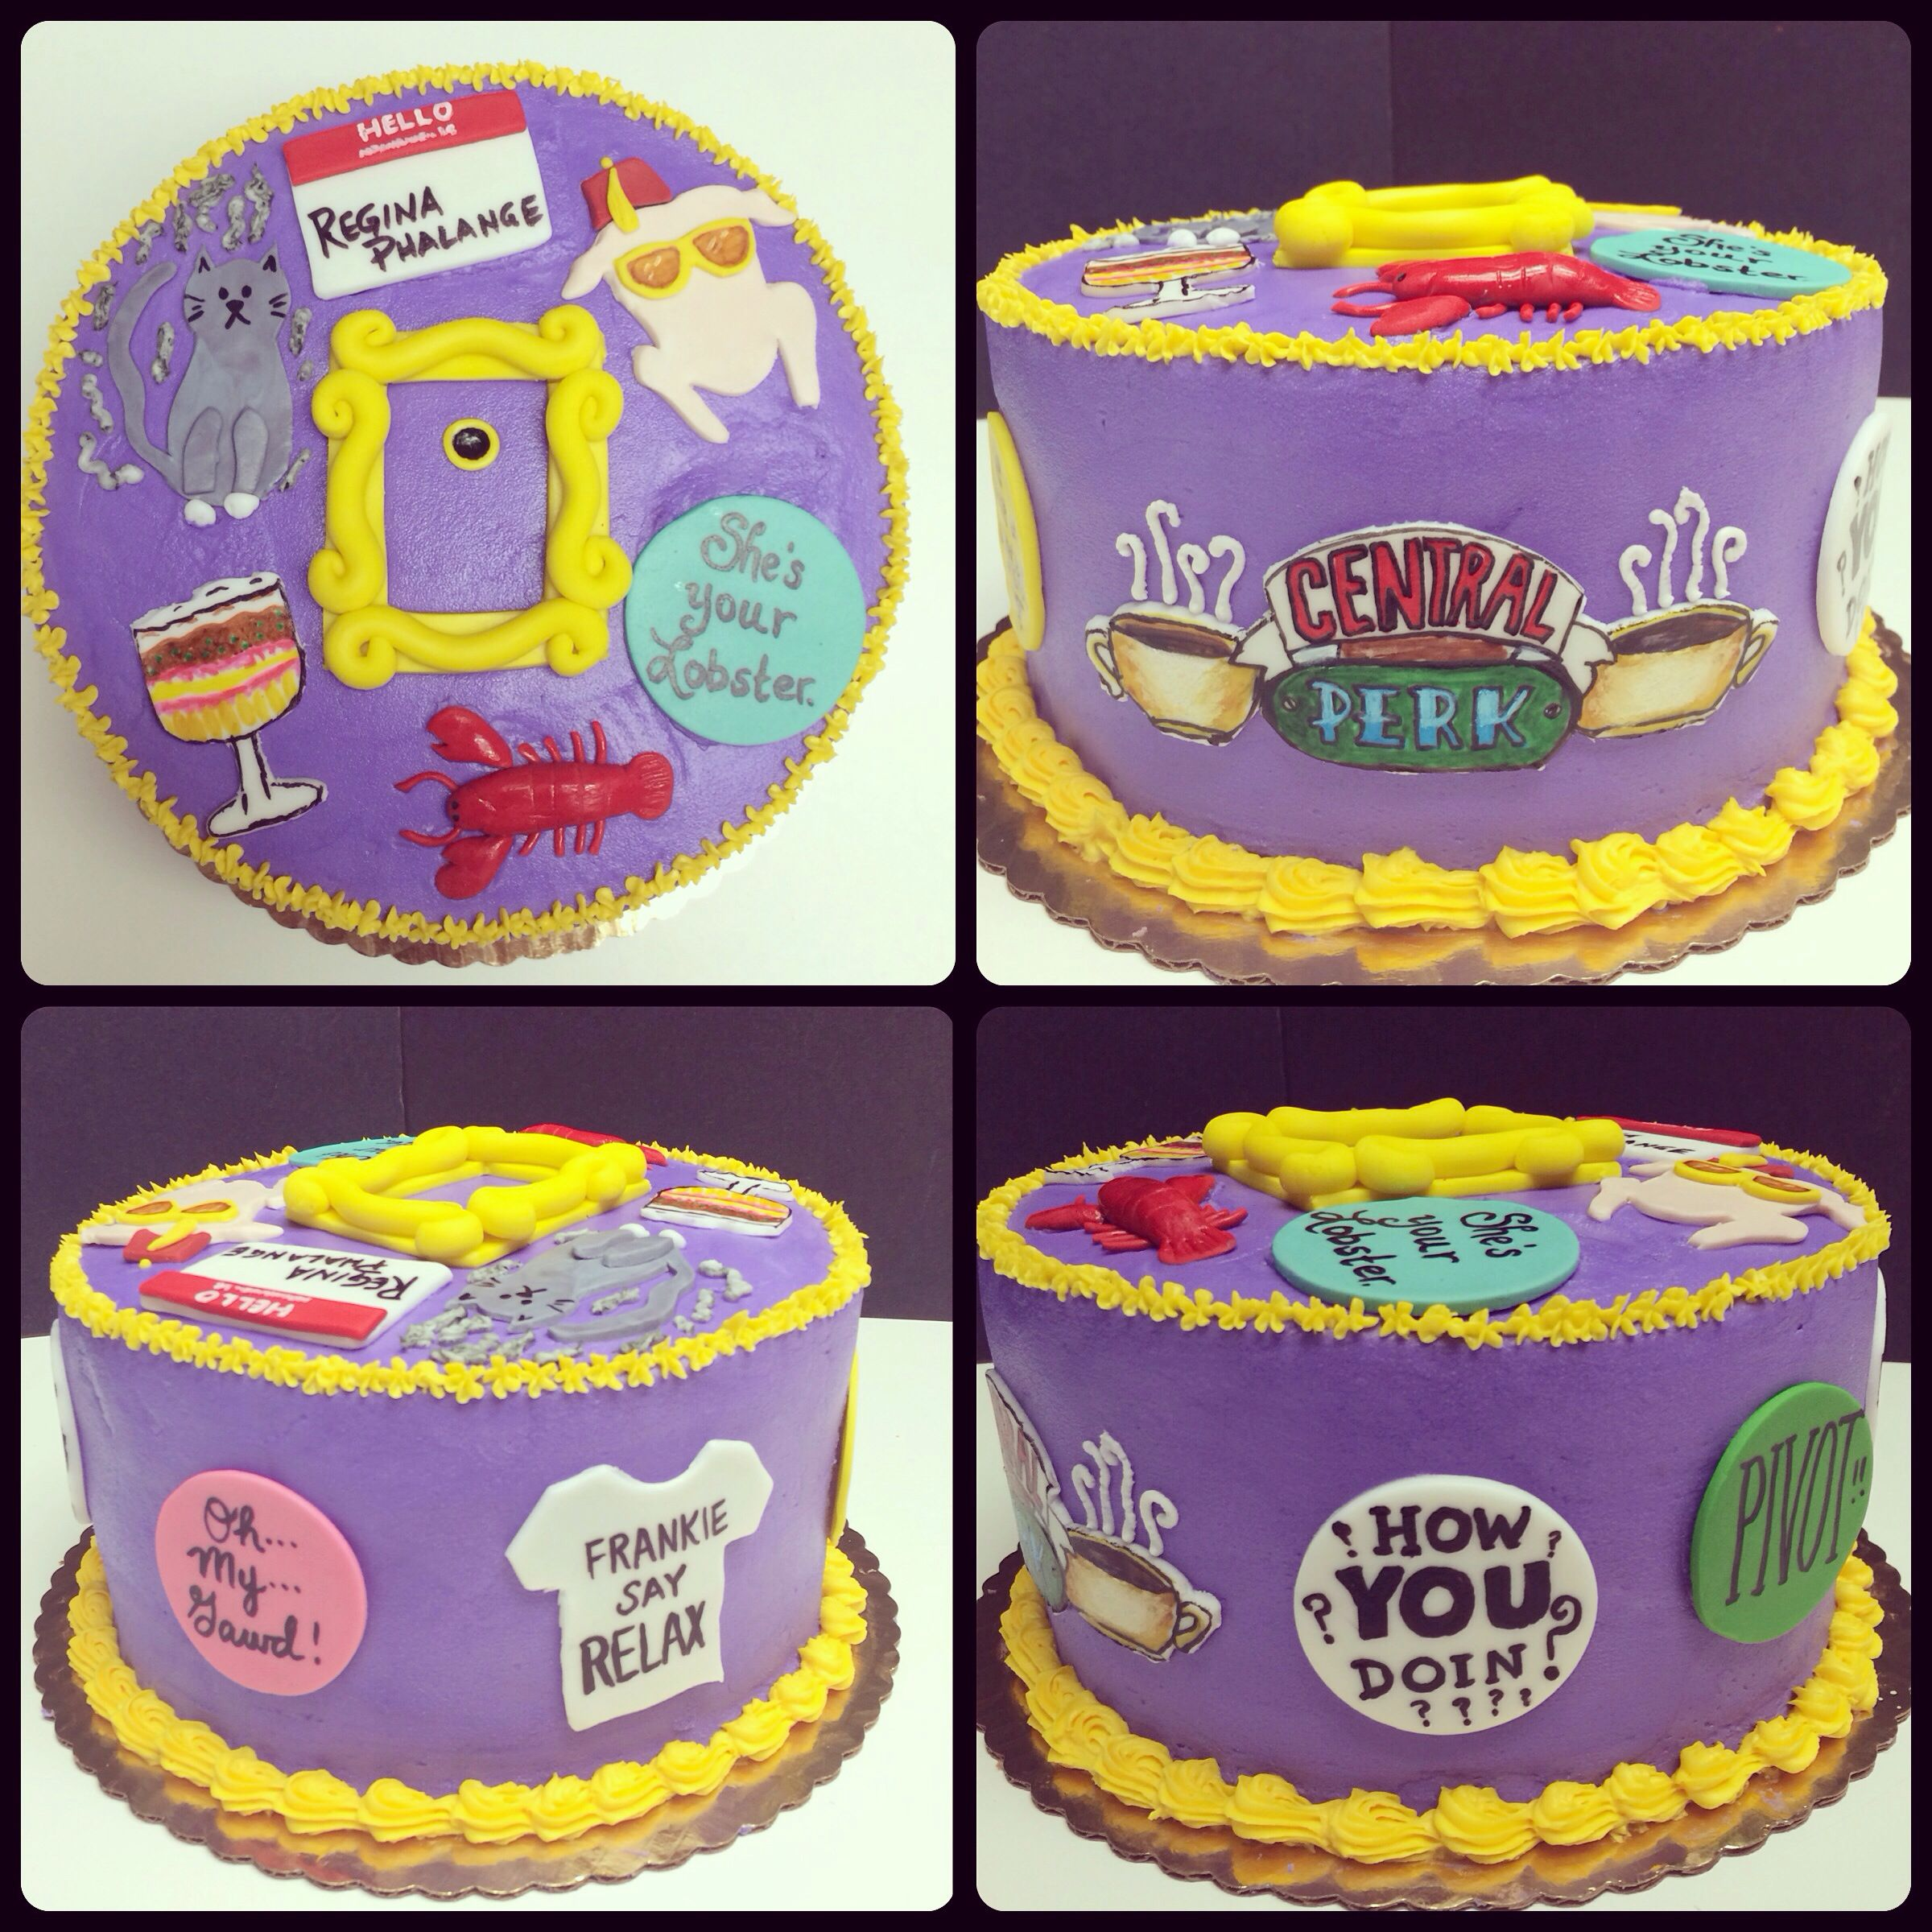 Marvelous Friends Tv Show Themed Cake Might Use This Idea For My Little Funny Birthday Cards Online Alyptdamsfinfo